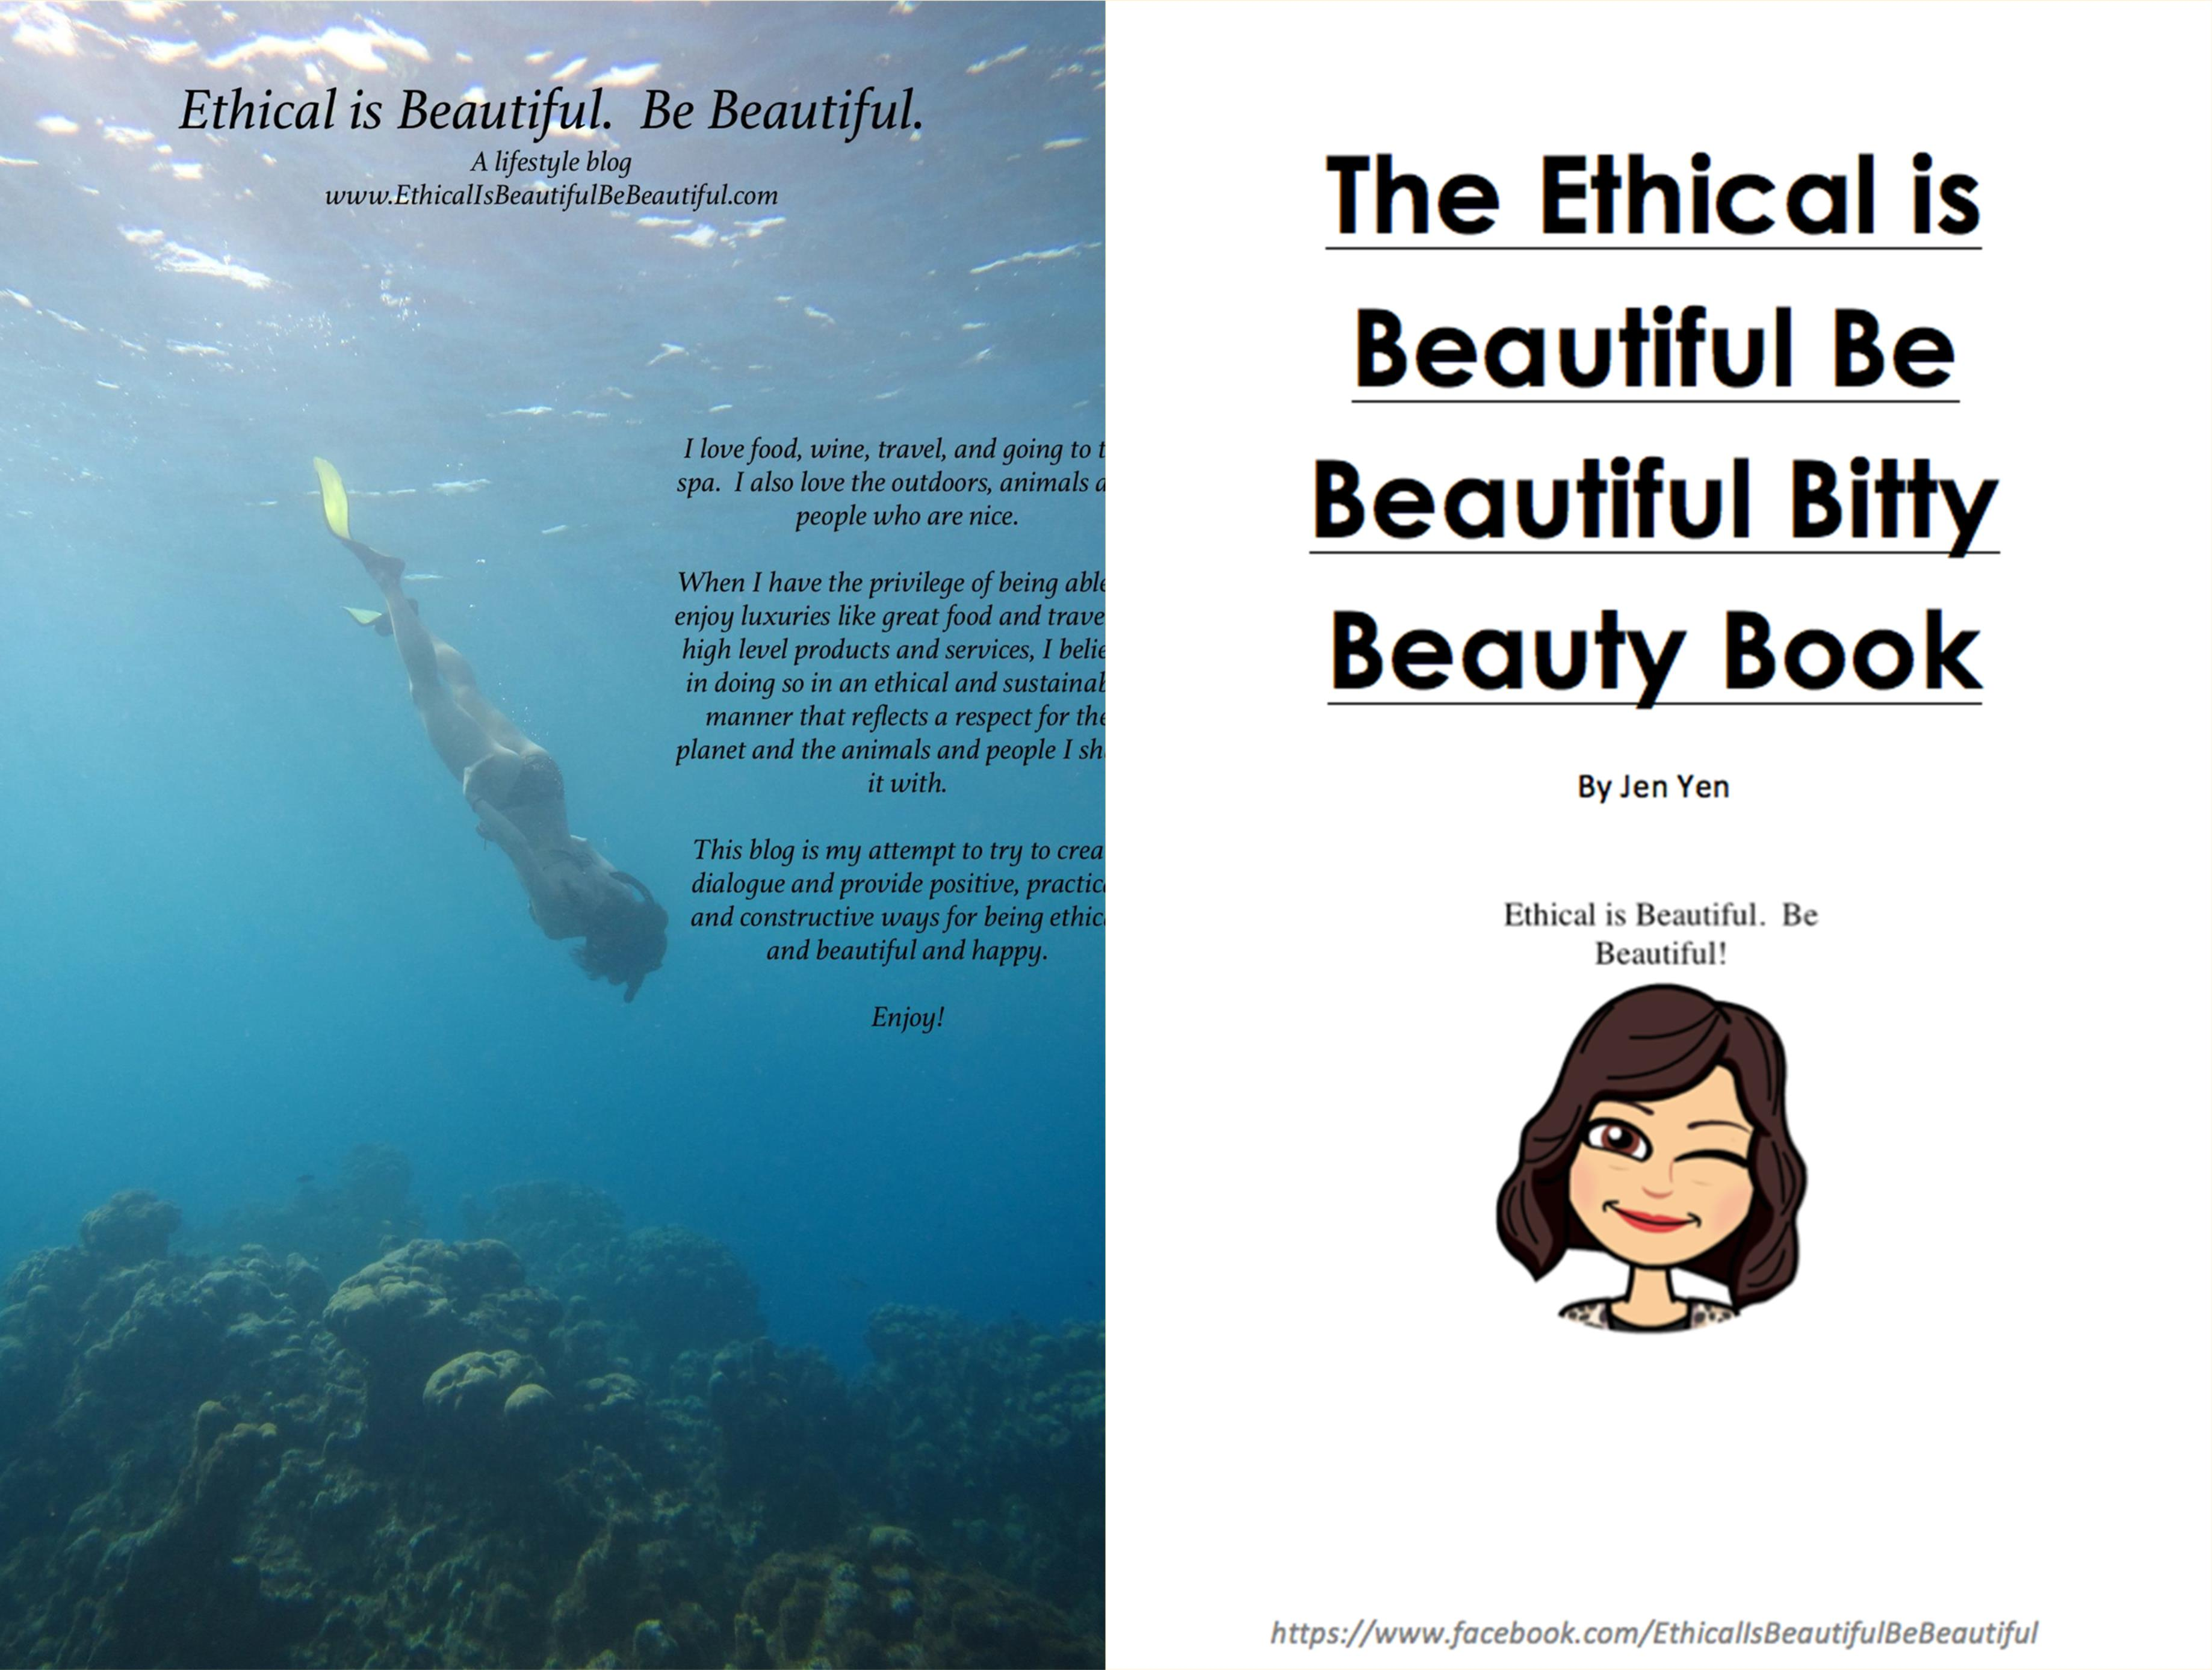 The Ethical is Beautiful Be Beautiful Bitty Beauty Book by Jen Yen cover image